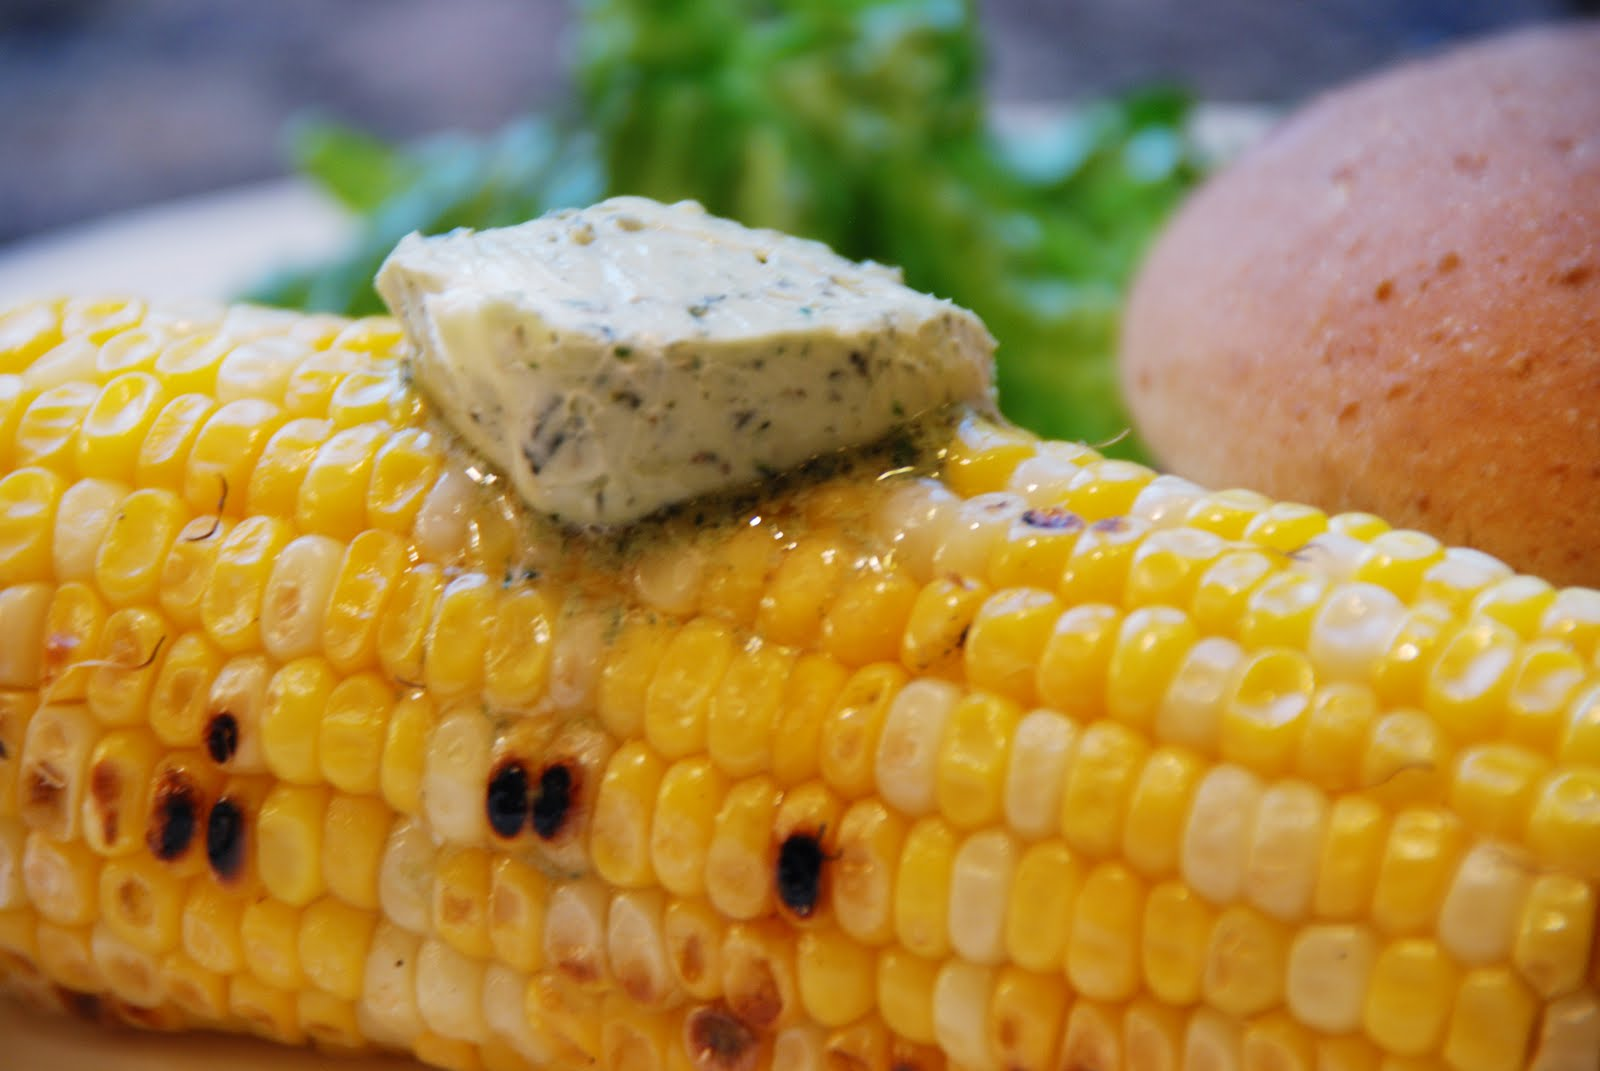 Discussion on this topic: Grilled Corn on the Cob with Basil , grilled-corn-on-the-cob-with-basil/